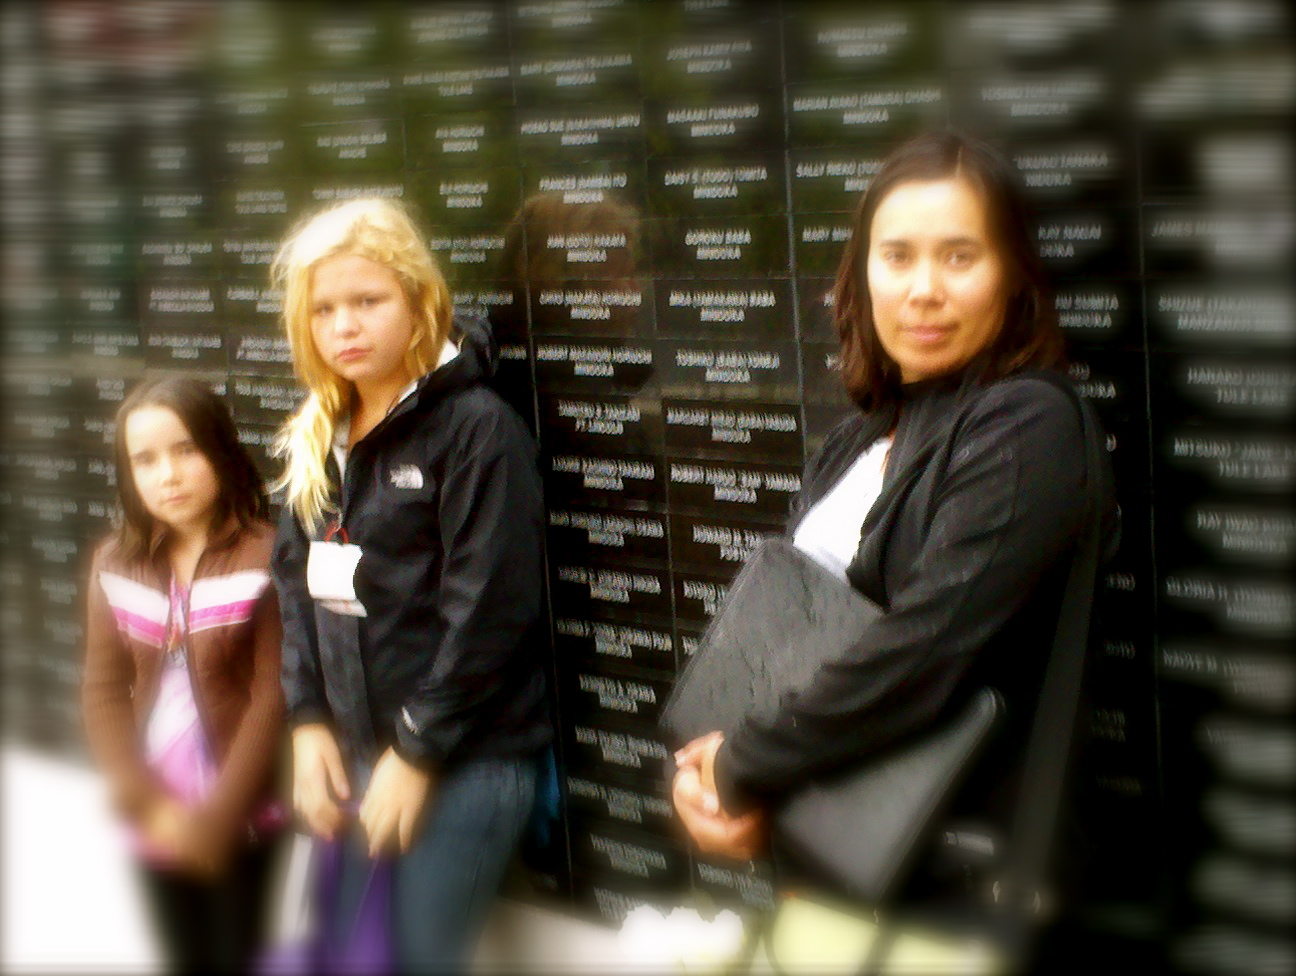 At the Japanese-American Memorial Wall re the WW2 Internments. L2R: Talia, Kate, & Kristina. Monday 6 September 2010.